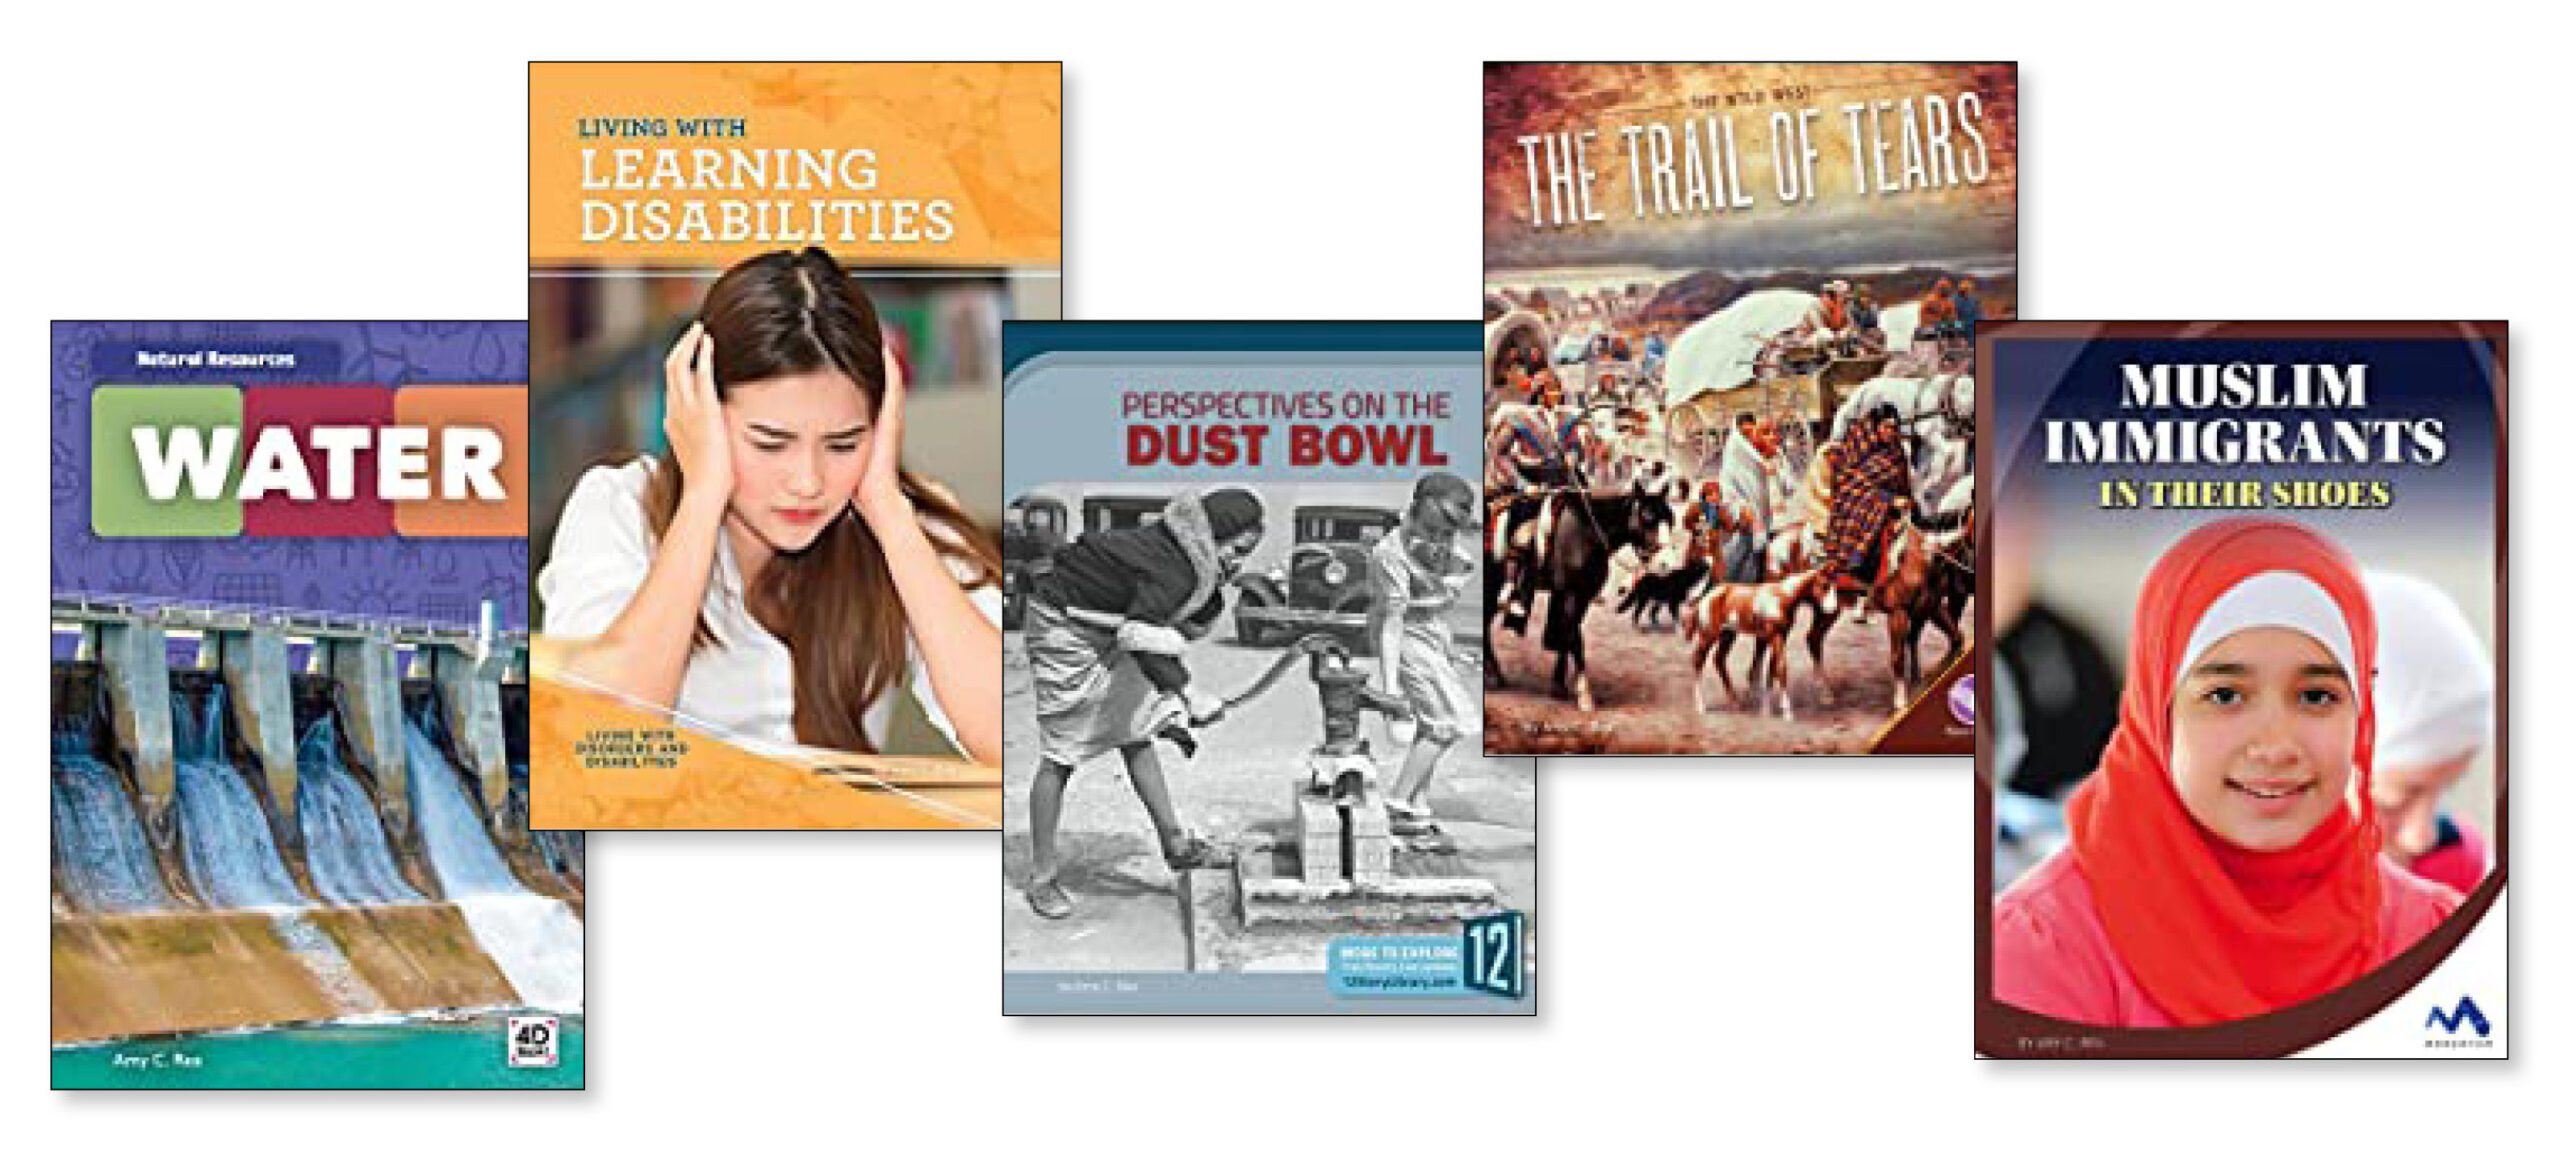 Image of various book covers on educational topics.